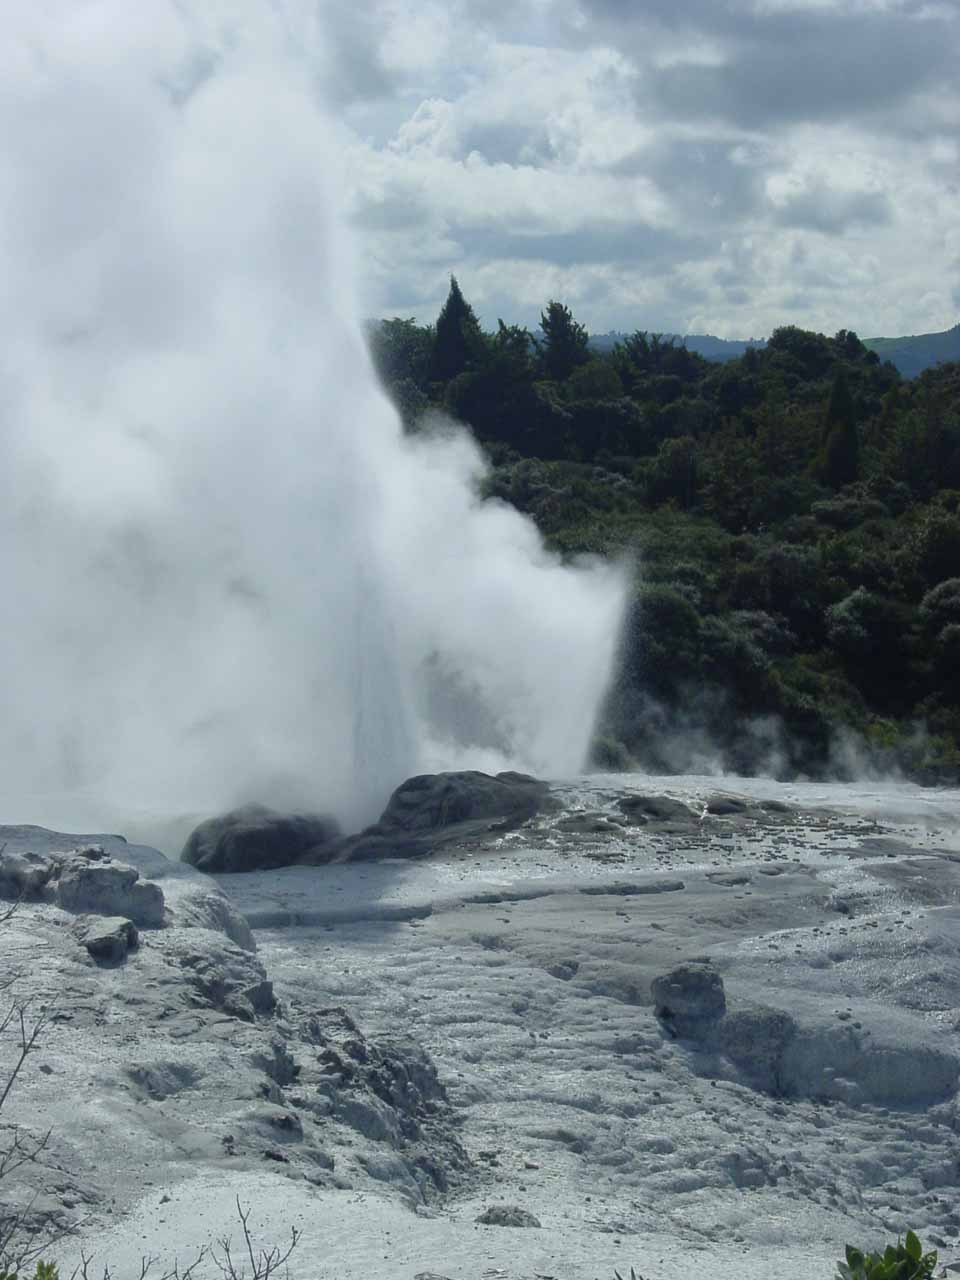 Hell's Gate was barely 15km or so northeast of Rotorua, which featured the Te Whakarewarewa Thermal Reserve, which itself featured the Prince of Wales and Pohutu Geysers